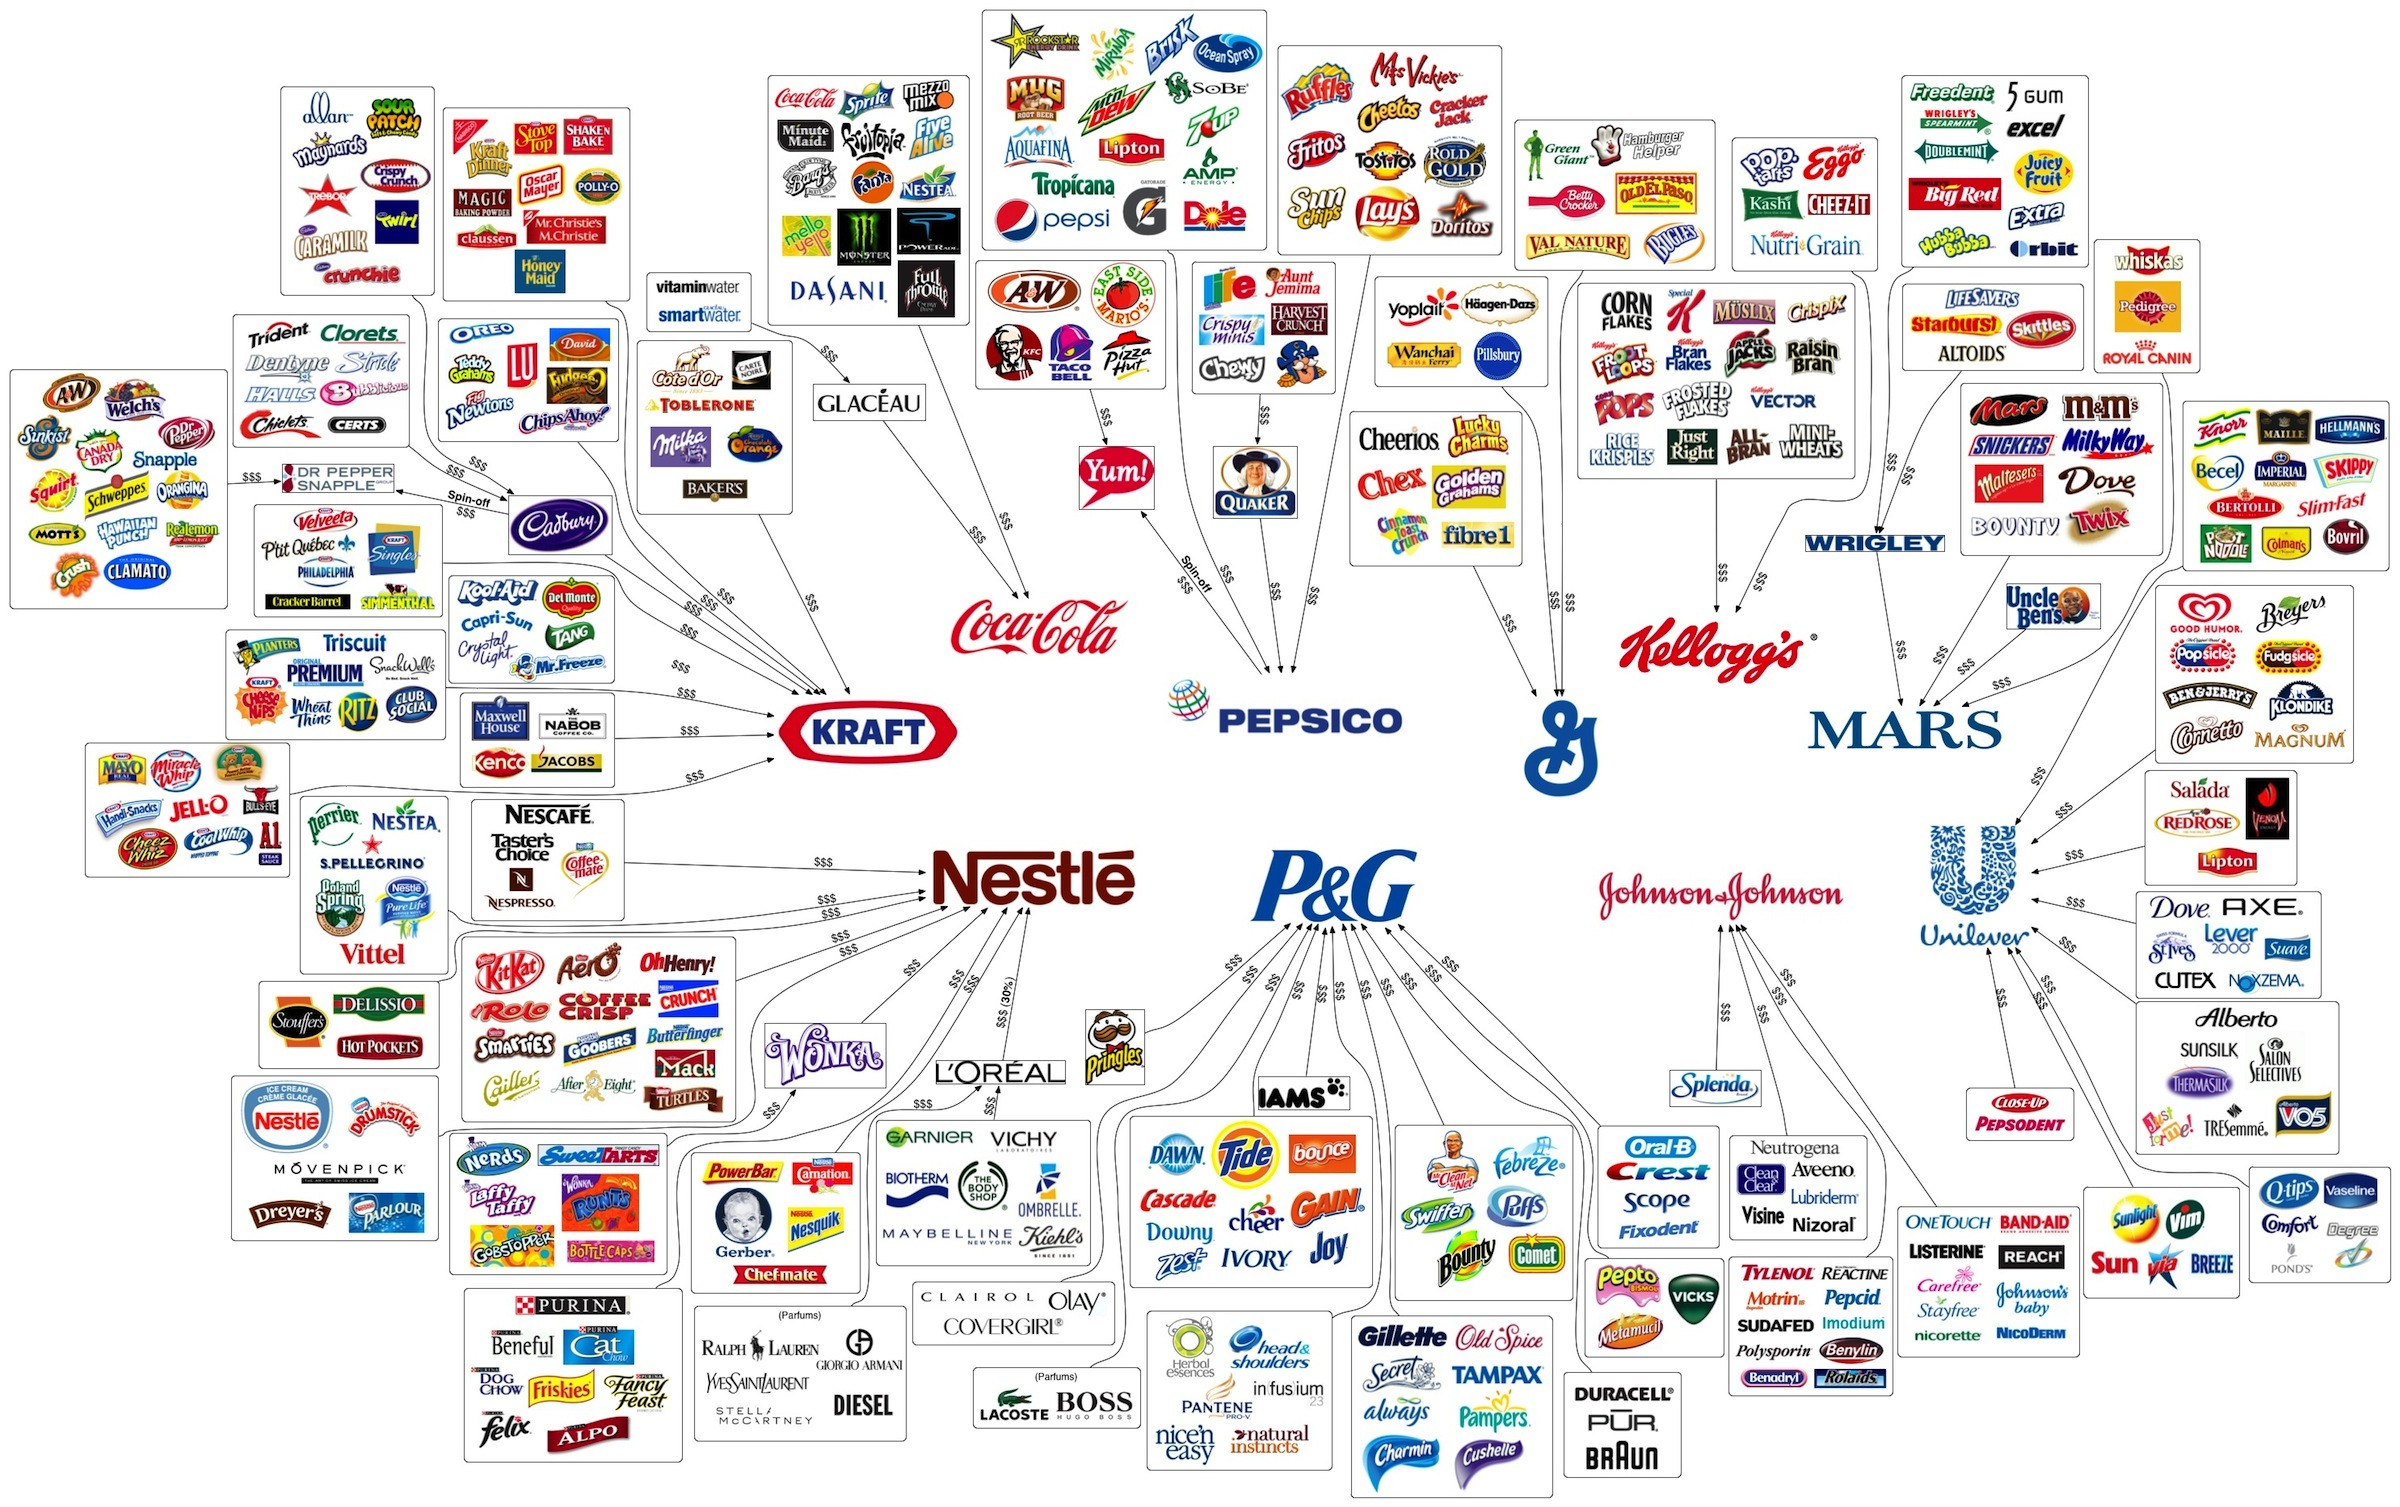 Brand Ownership by Large Corporations b